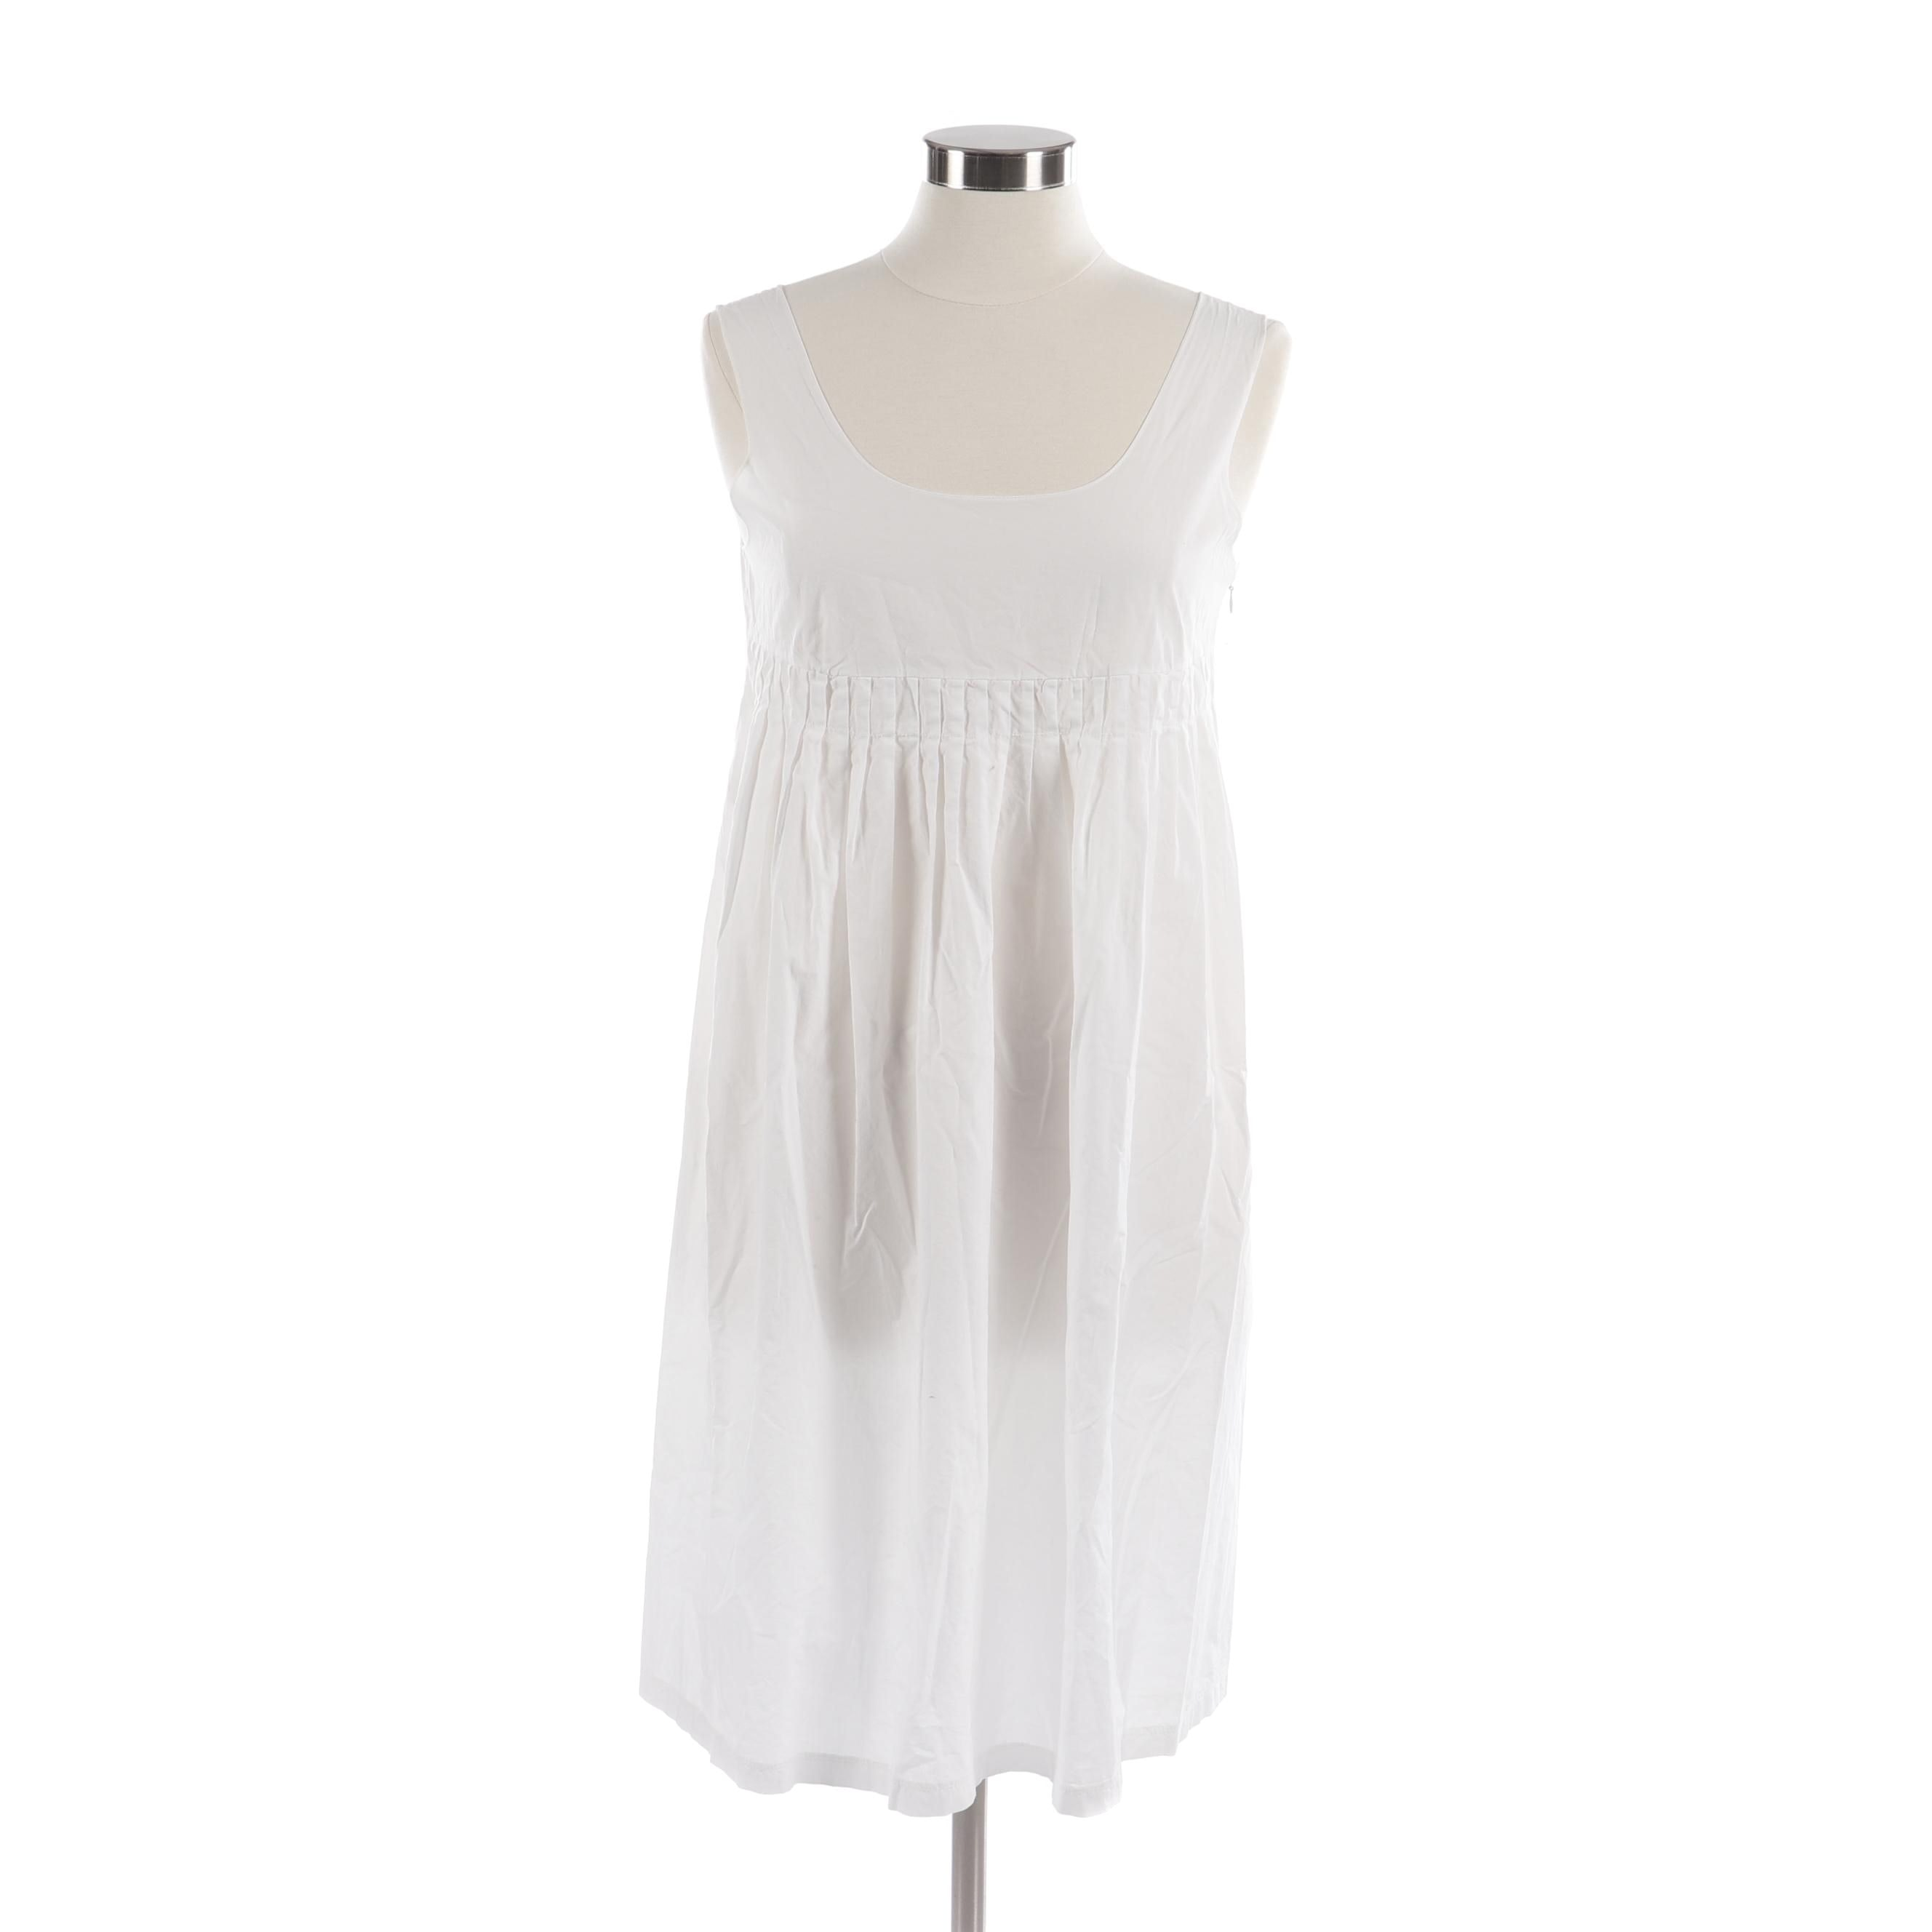 Marni Sleeveless White Dress, Made in Italy